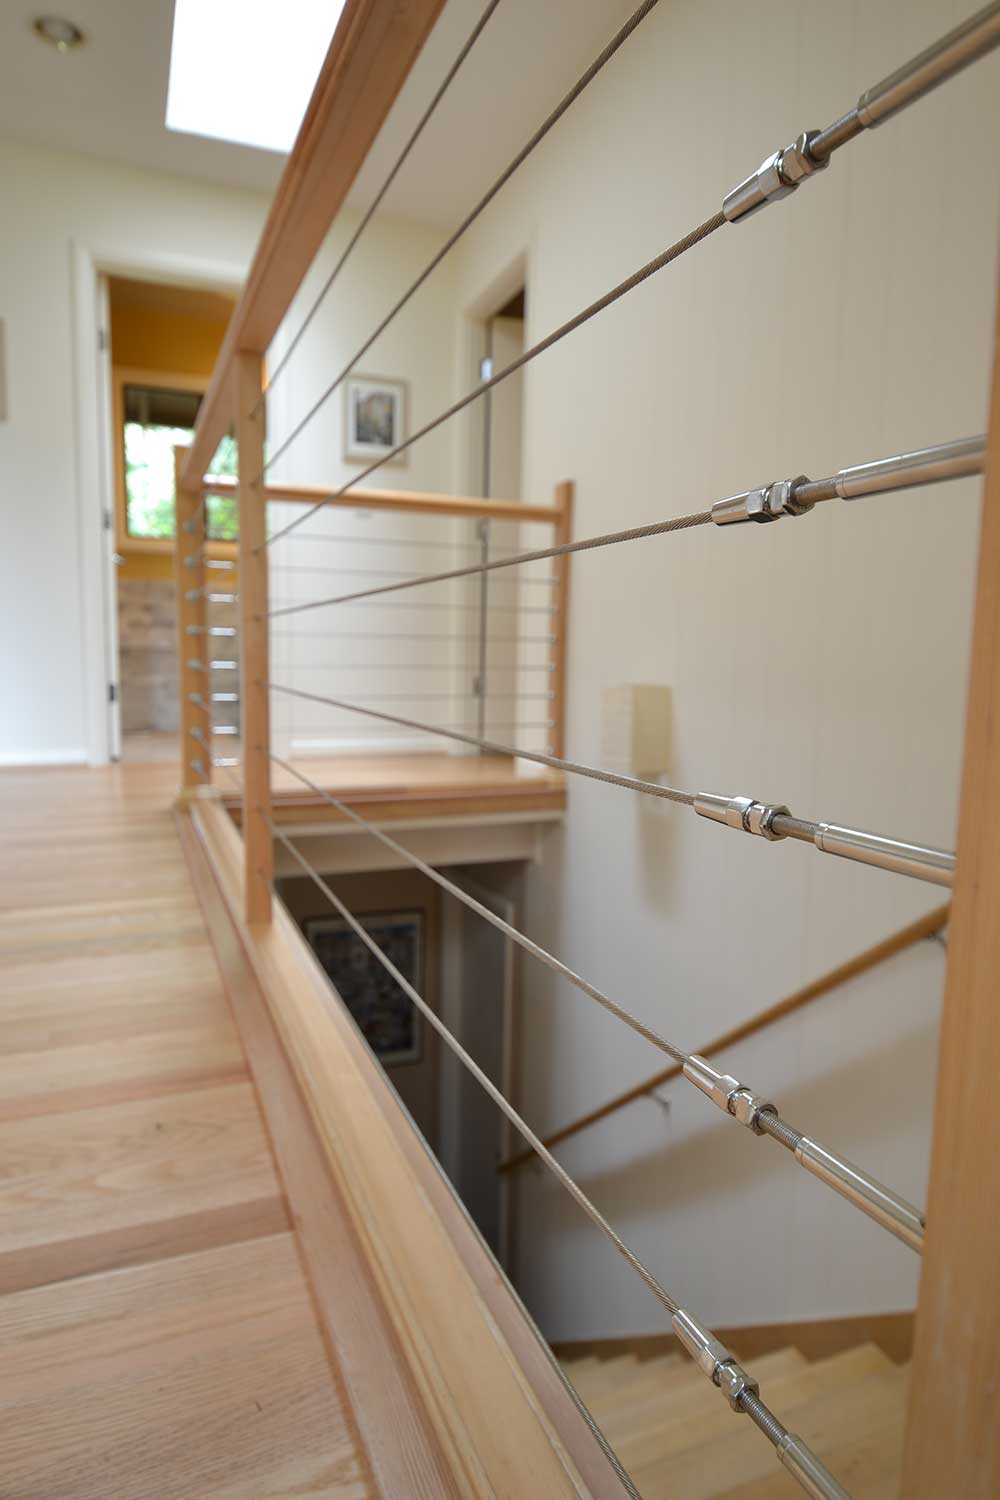 Remodel Staircase with Wooden Floors and Cable Railing